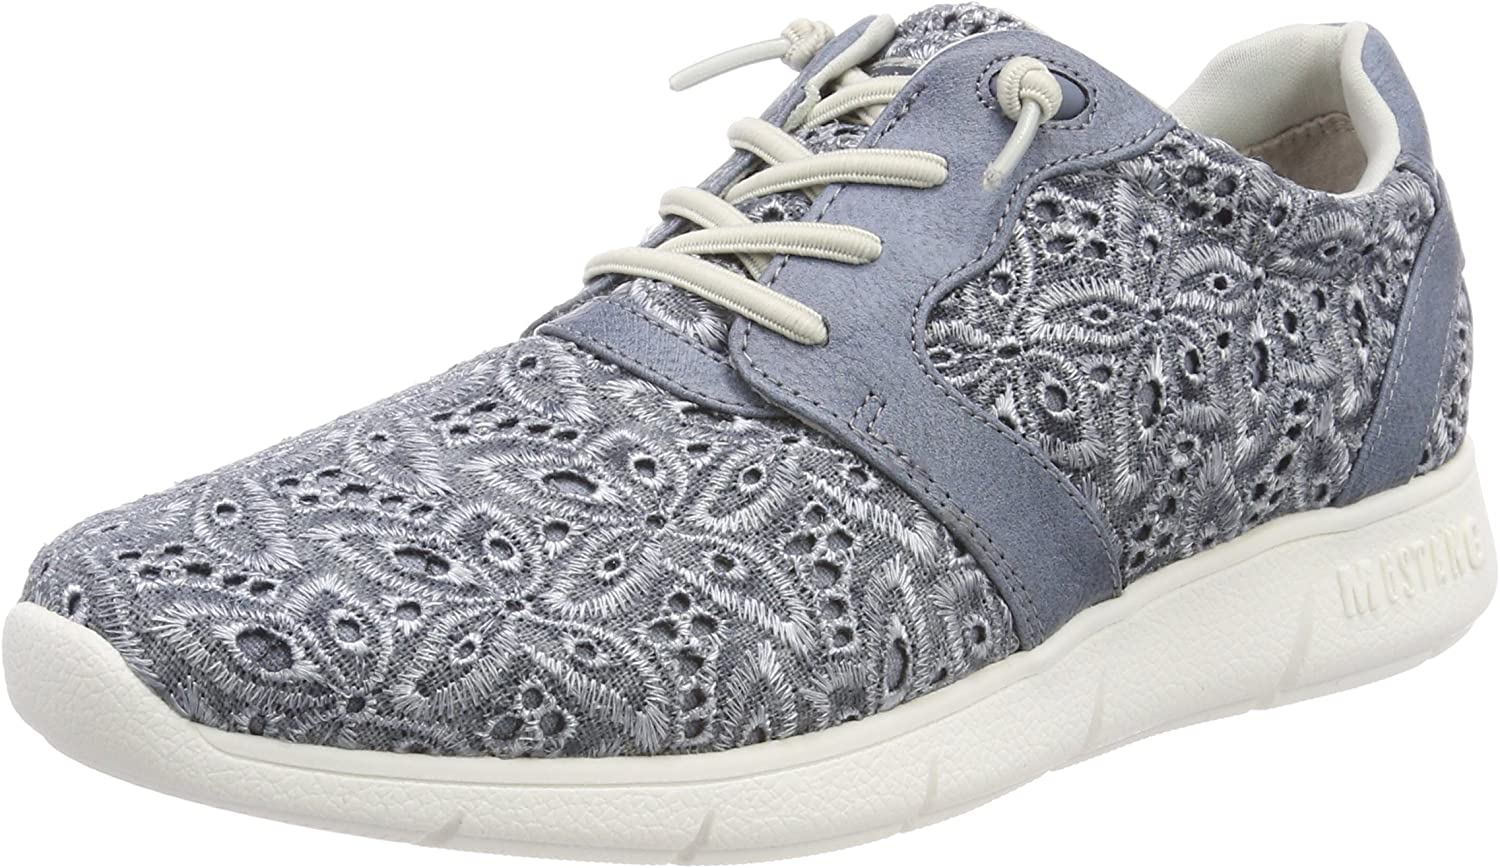 Mustang Women's 1242-404-875 Slip on Trainers